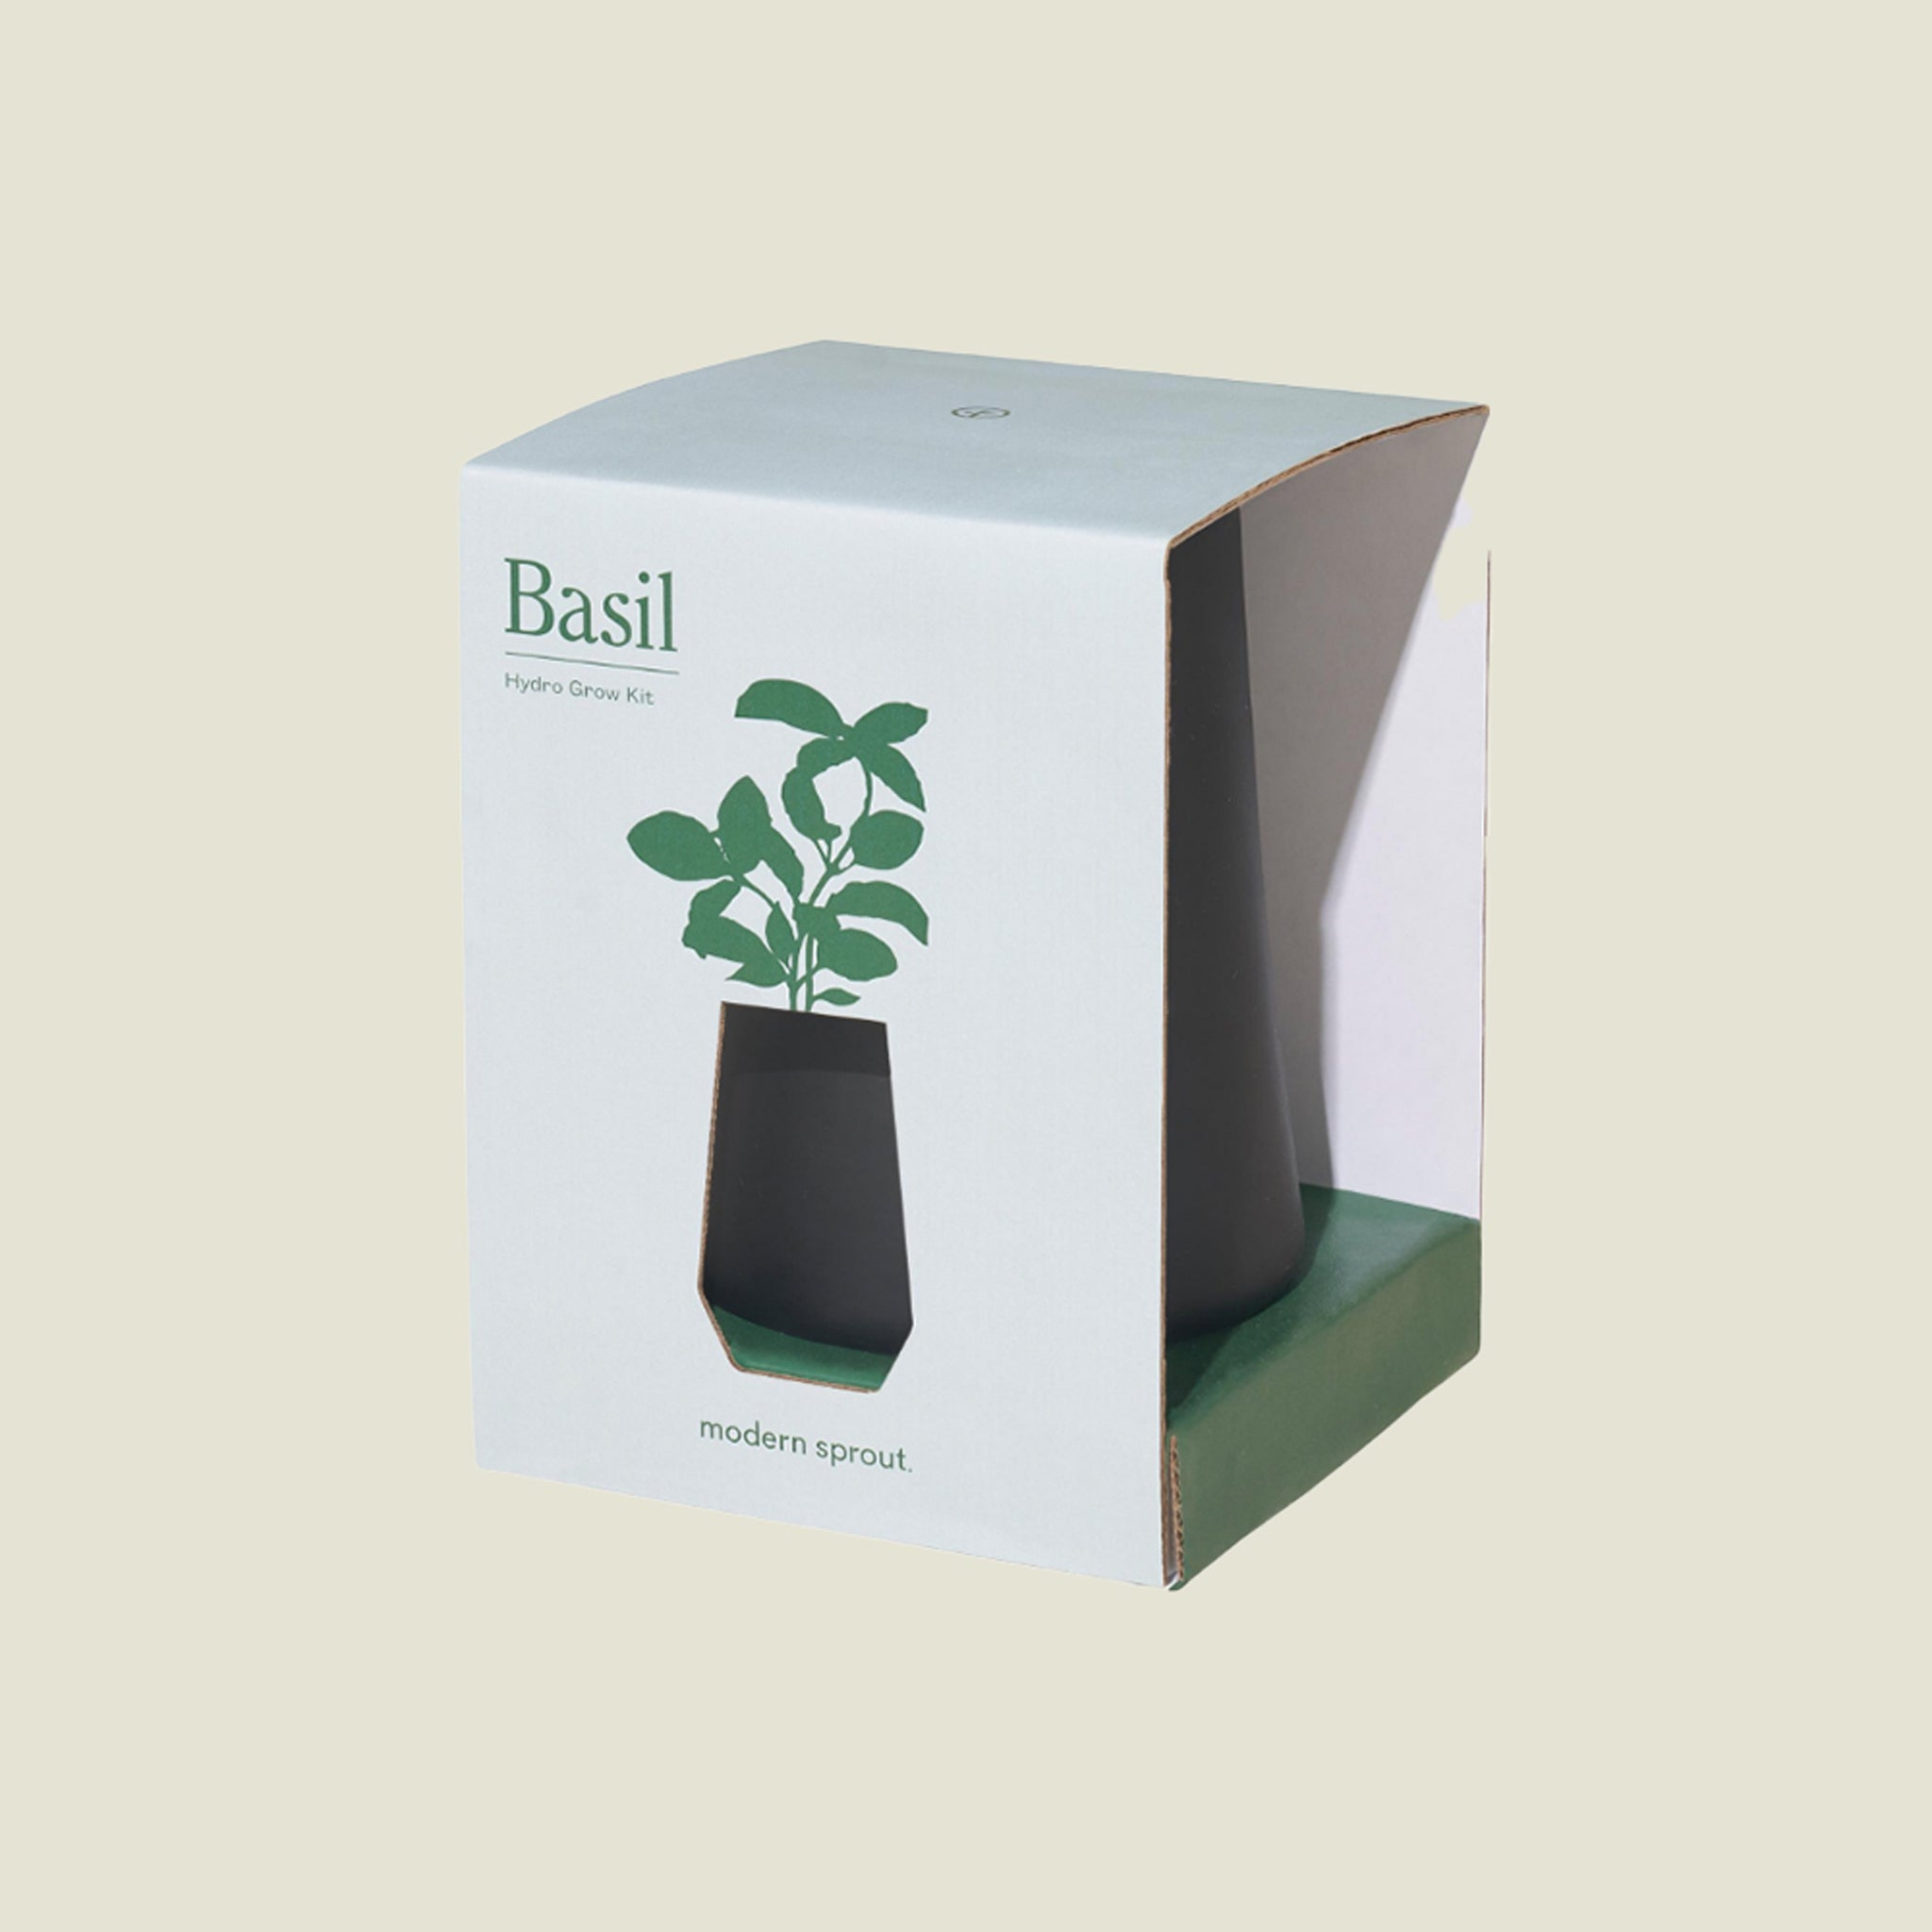 Basil Hydro Grow Kit